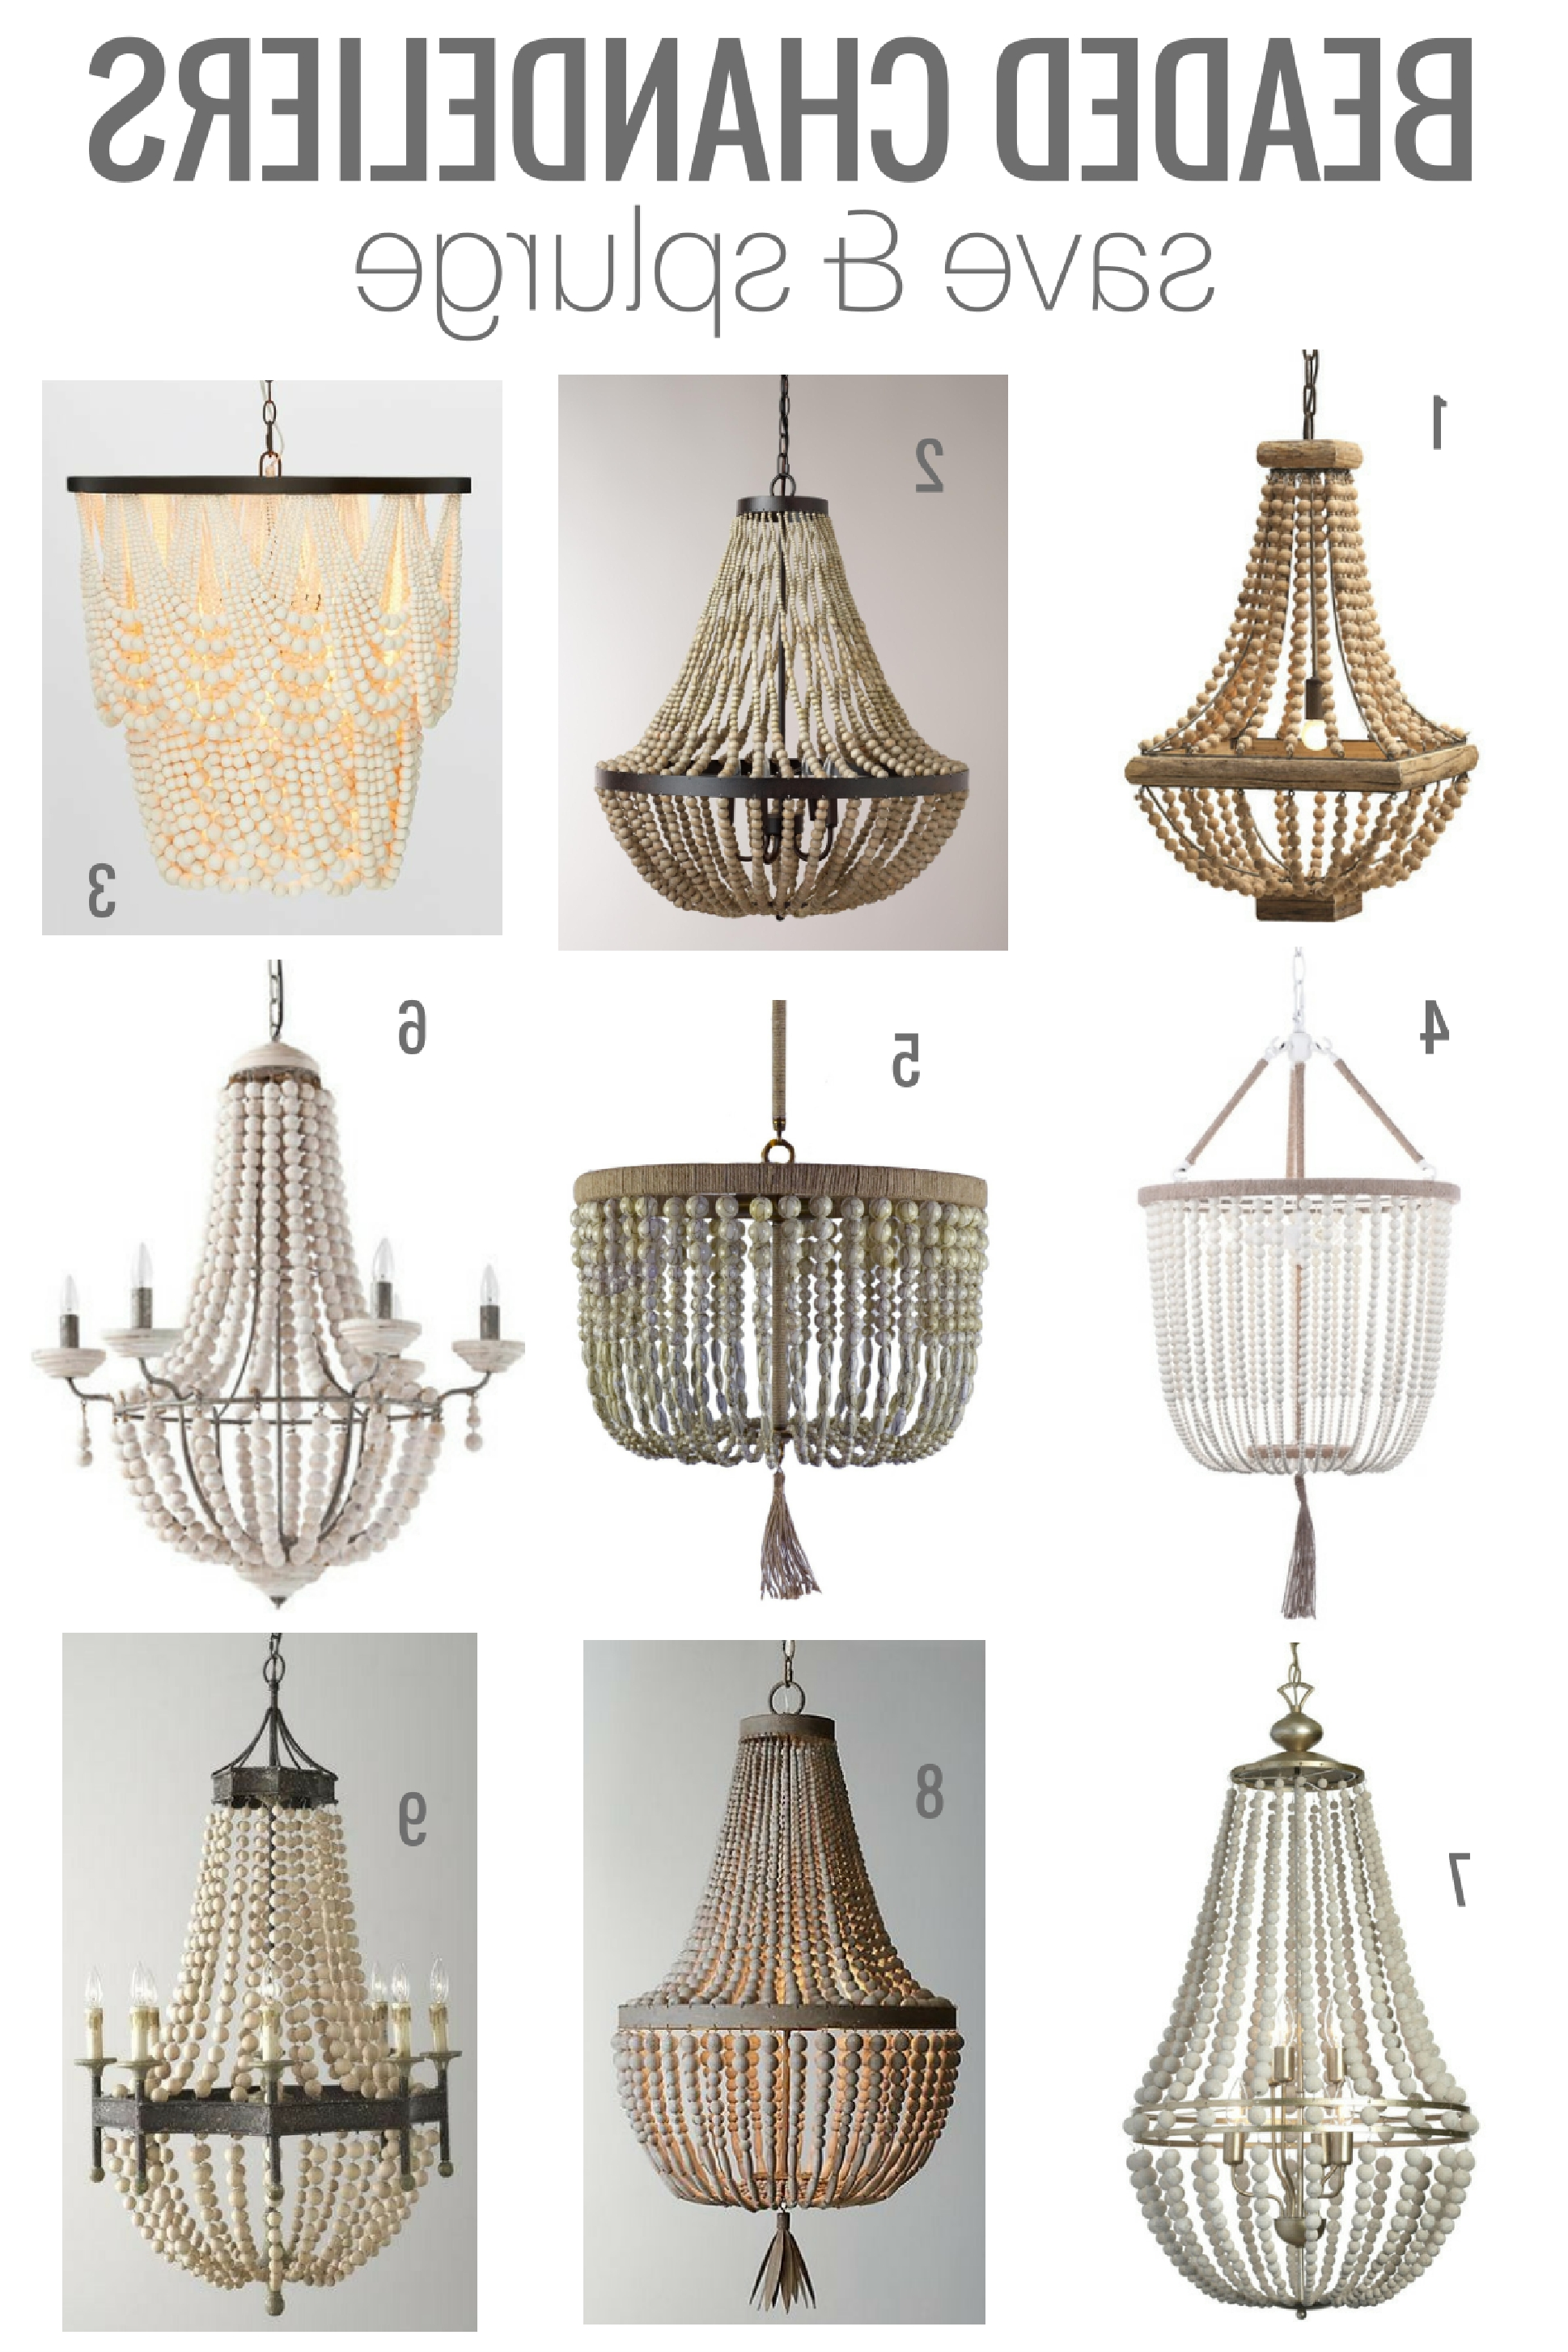 Beaded Chandeliers & Invaluable Lighting Lessons (View 3 of 15)